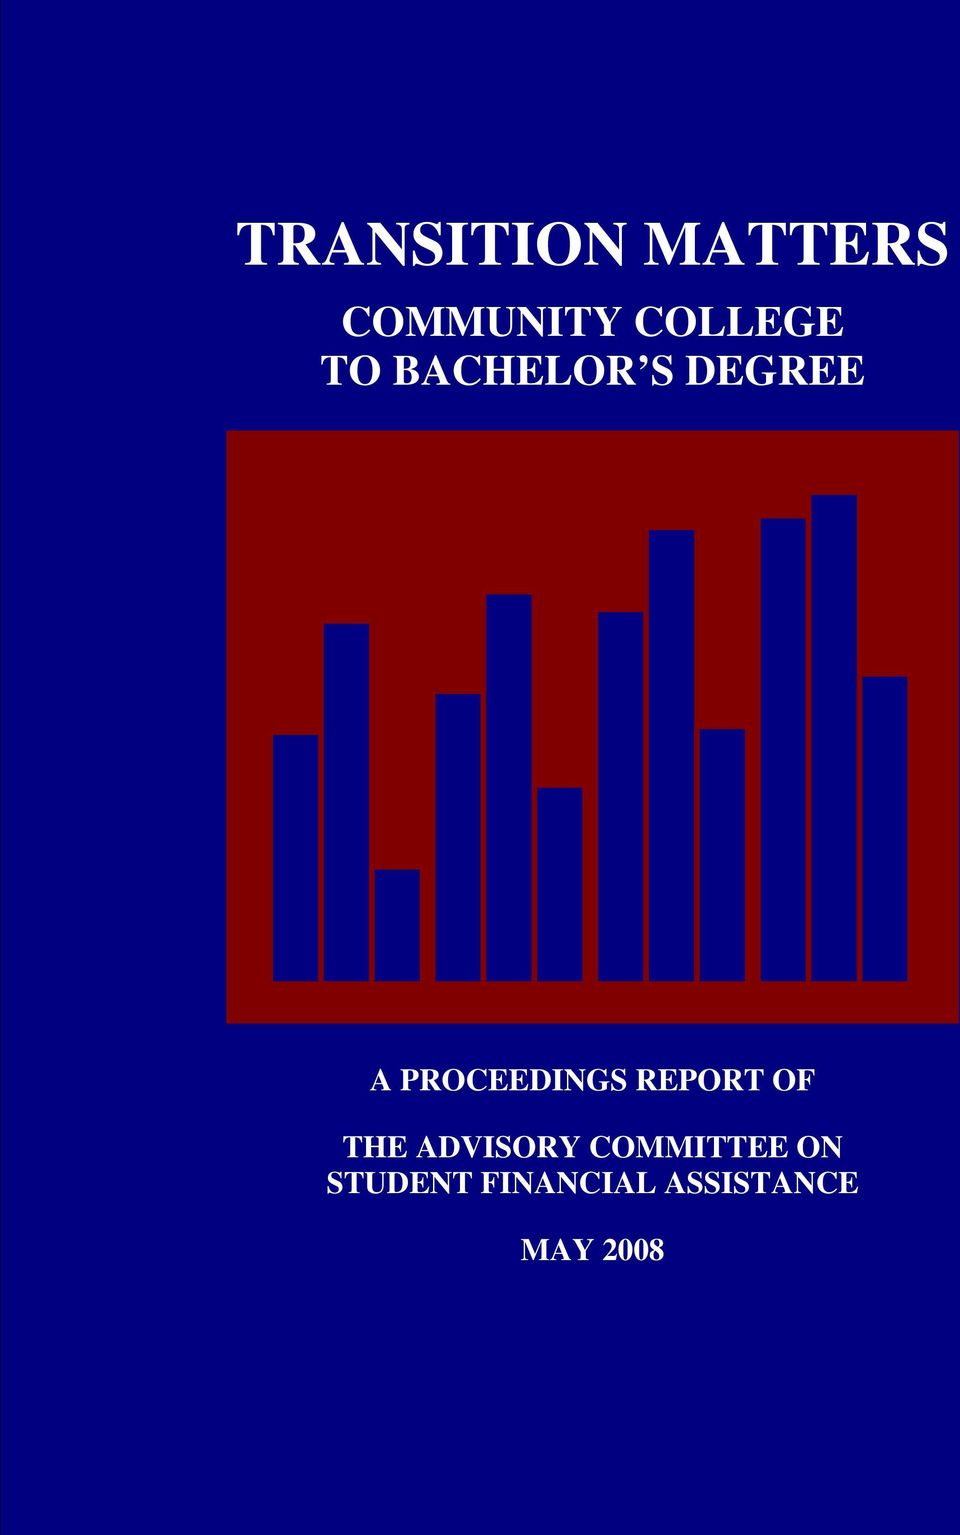 REPORT OF THE ADVISORY COMMITTEE ON